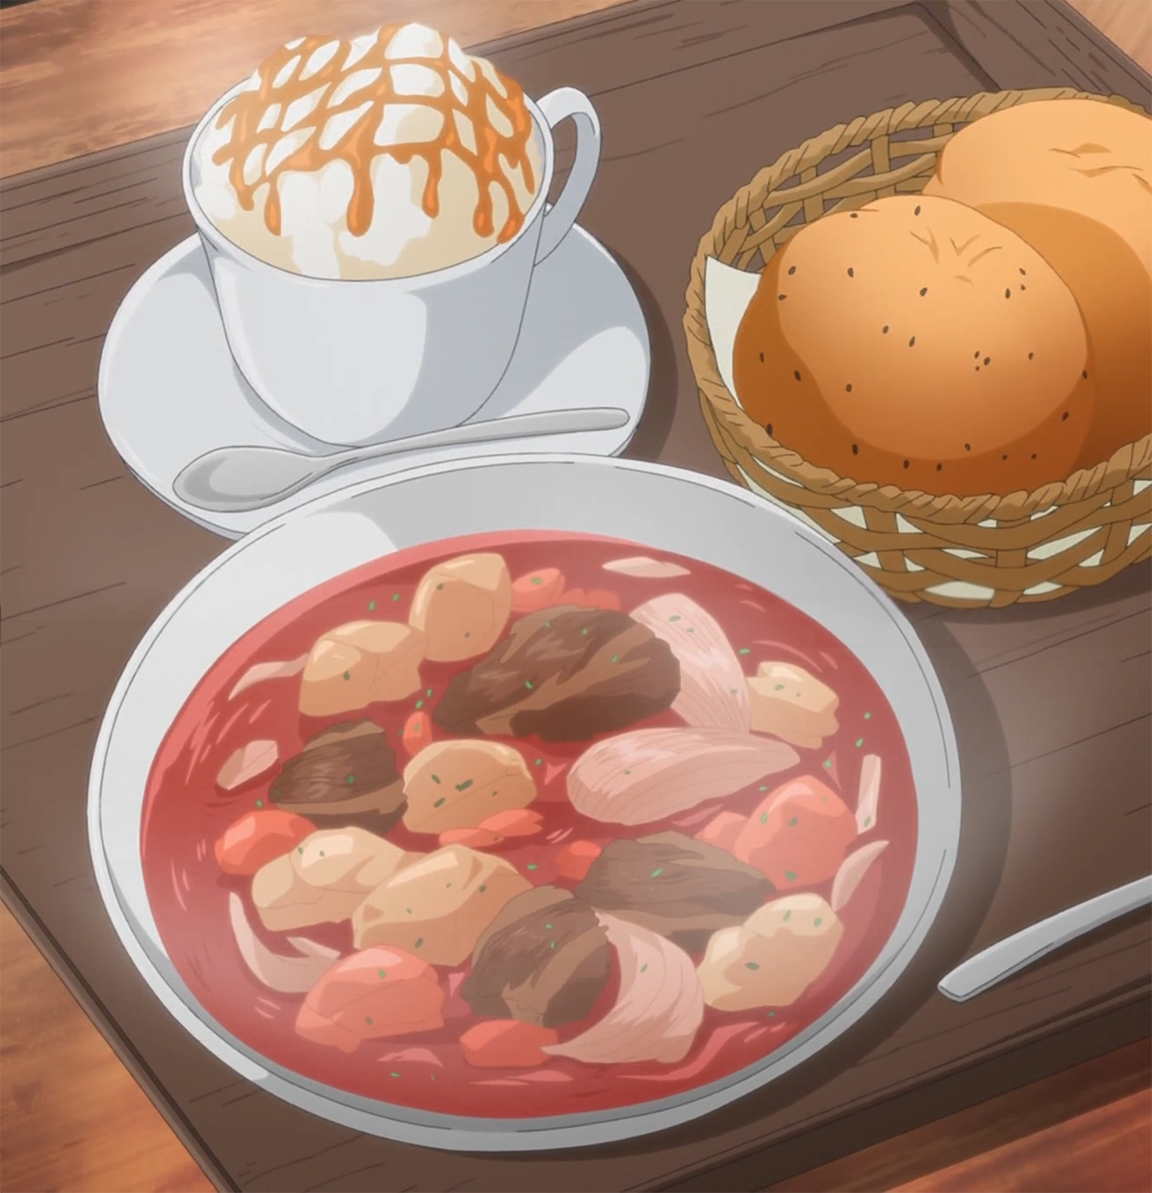 Featured image for Yuru Camp's Hearty Sweet-Meets-Sour Beet and Beef Borscht!